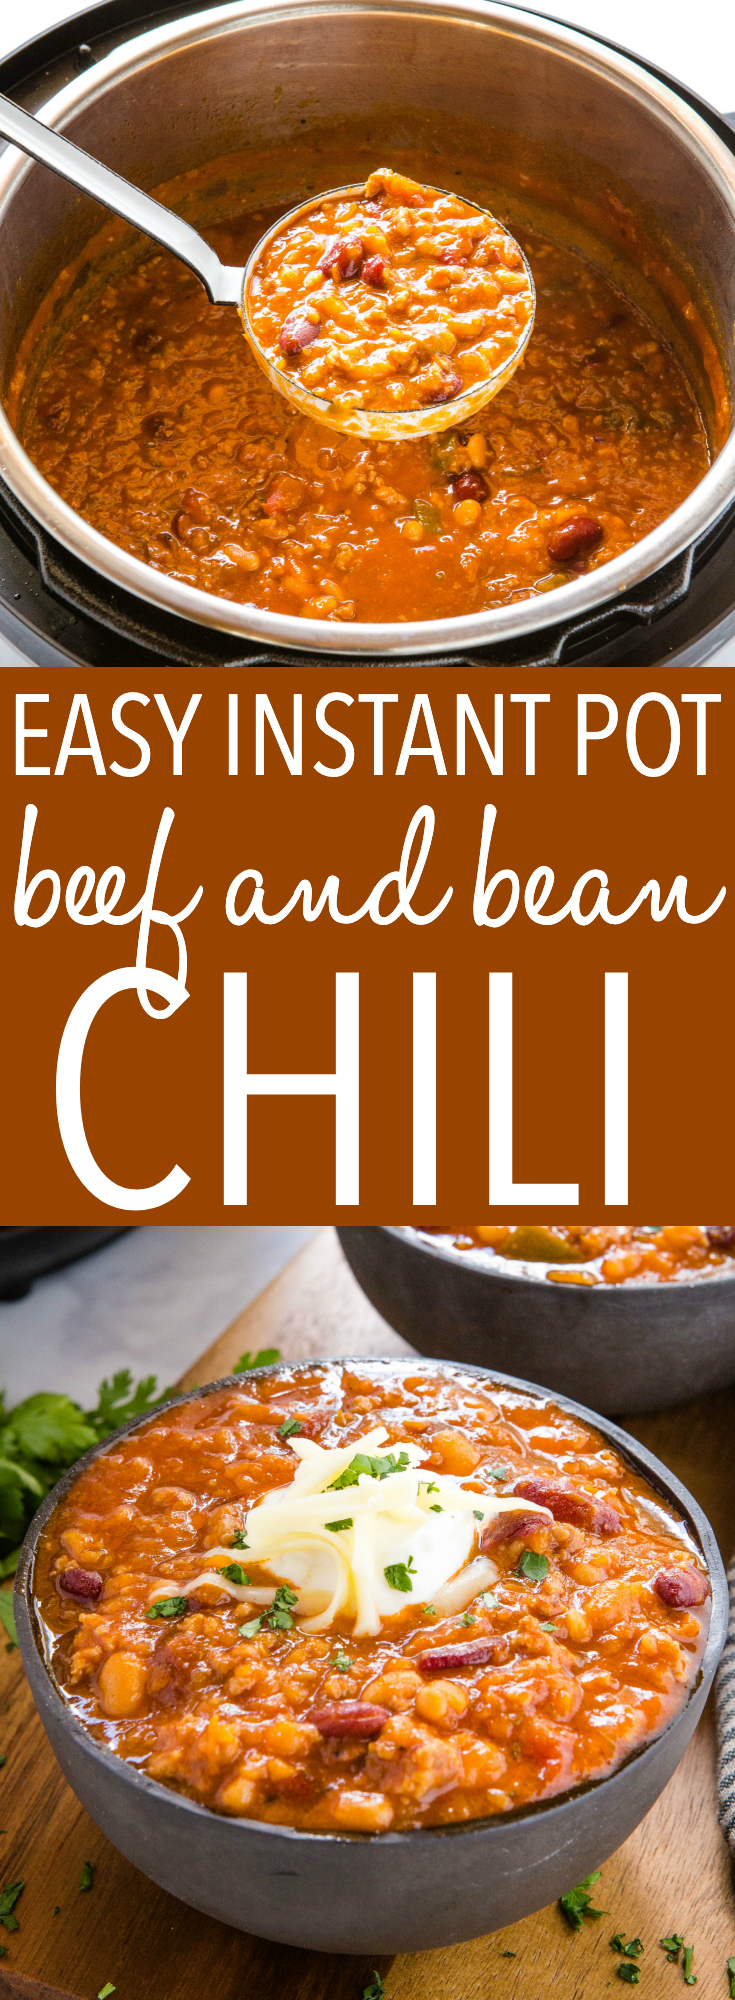 This Instant Pot Beef and Bean Chili is hearty and filling, and packed with lean ground beef and beans! Ready in 30 minutes! Recipe from thebusybaker.ca! #chili #instantpotchili #chiliconcarne #beefandbeanchili #soup #stew #meal #dinner via @busybakerblog